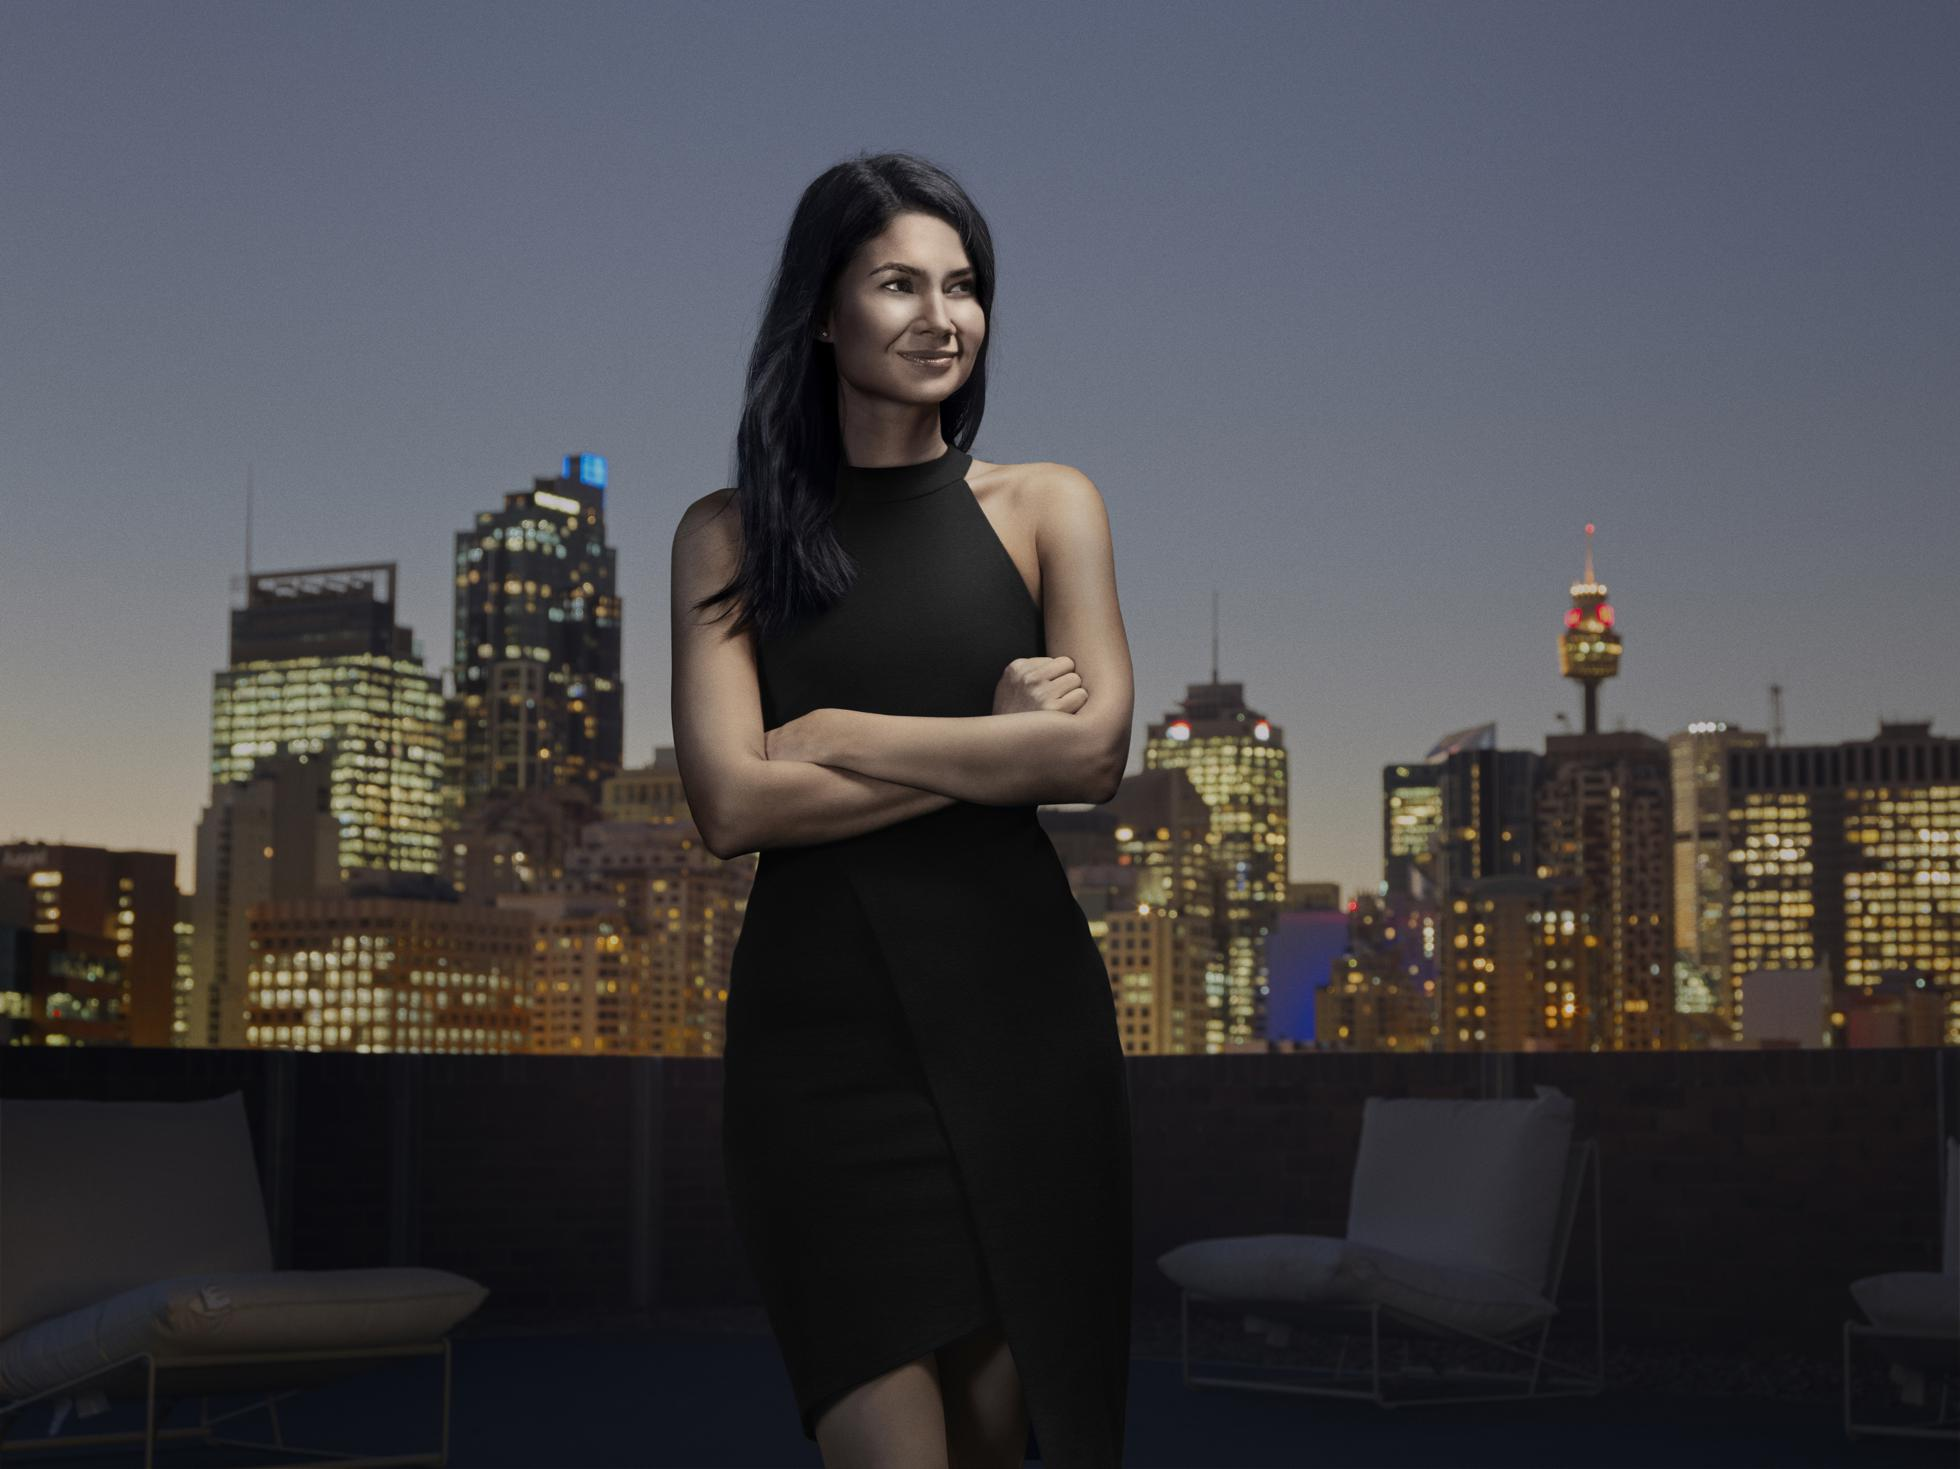 Canva CEO Melanie Perkins is a self-made woman billionaire